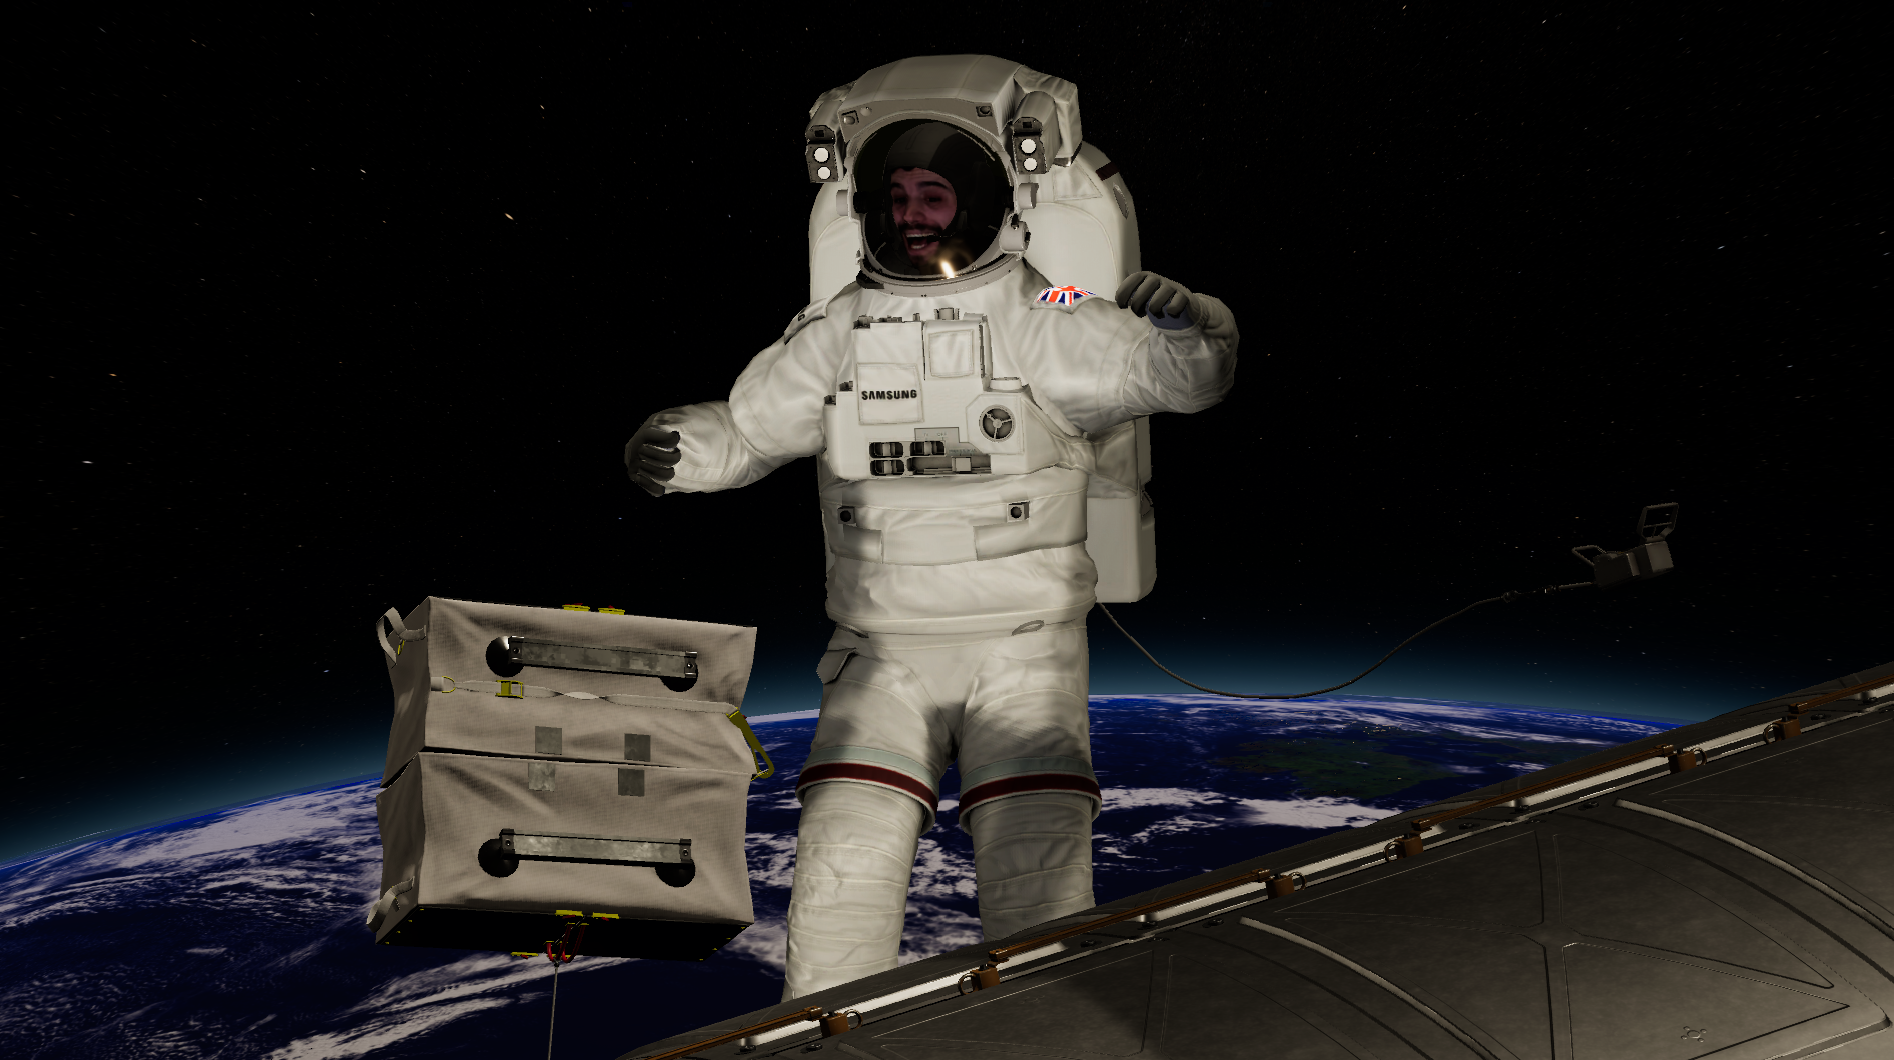 Samsung Augmented Reality Spacesuit